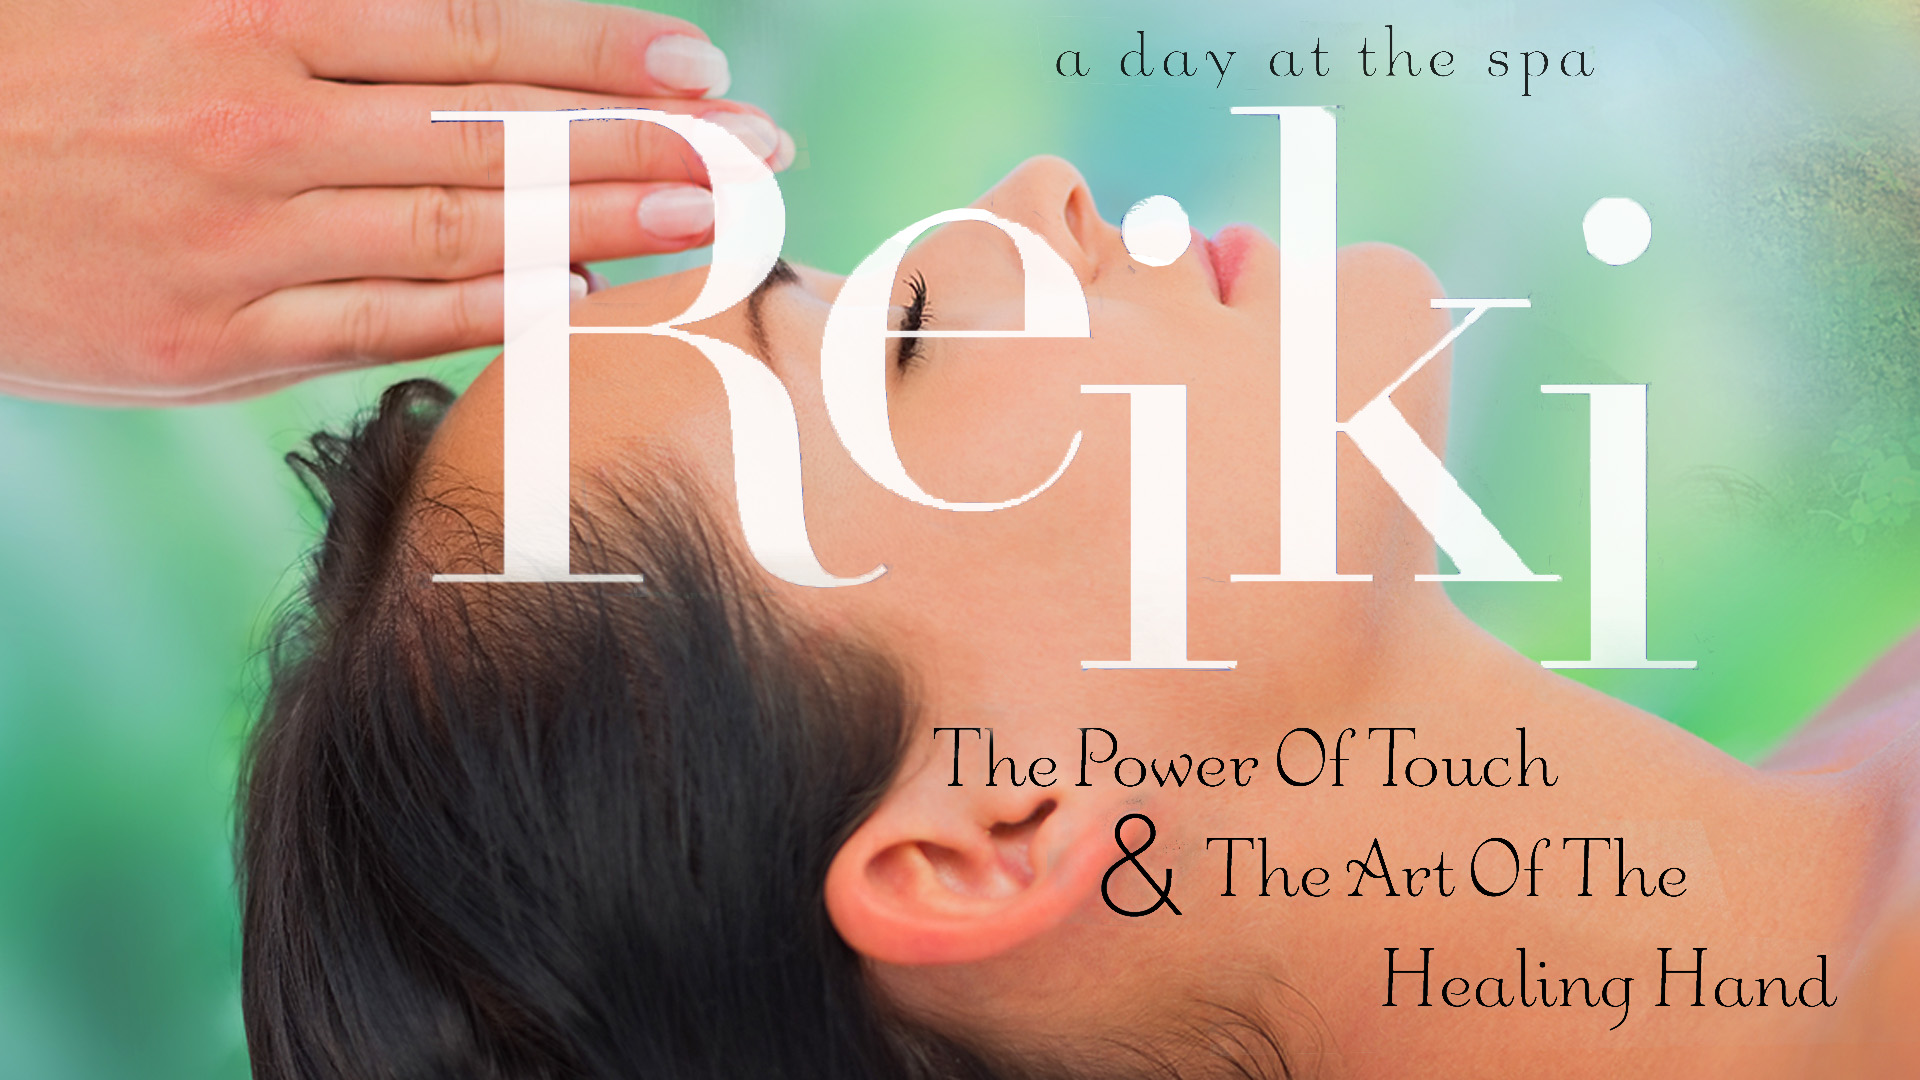 Reiki: The Power of Touch & The Art of the Healing Hand - A Day at the Spa Collection